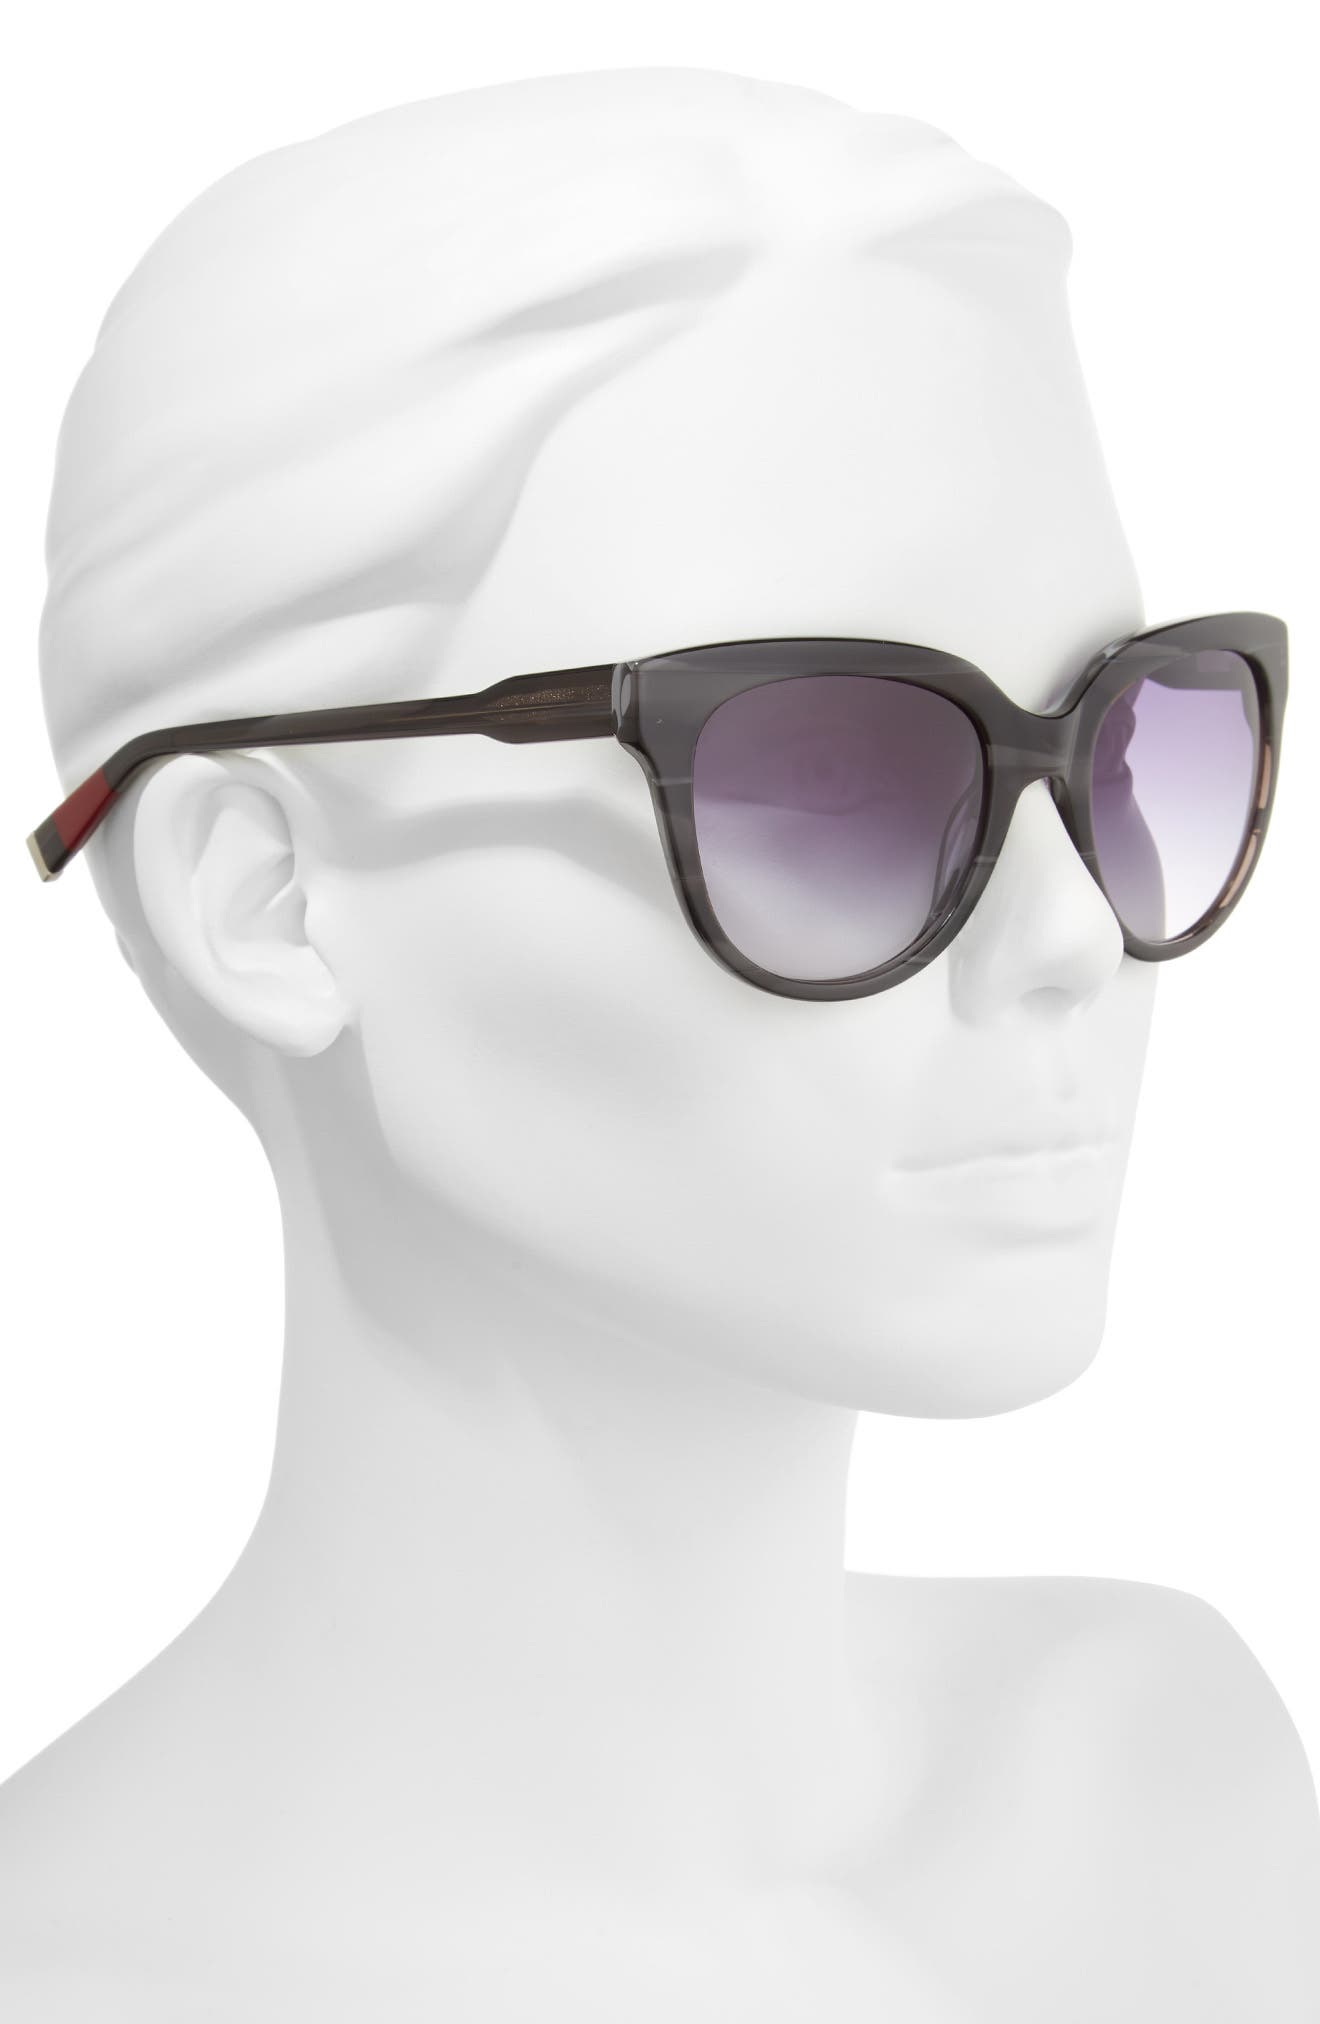 54mm Oval Sunglasses,                             Alternate thumbnail 2, color,                             GREY STRIPE